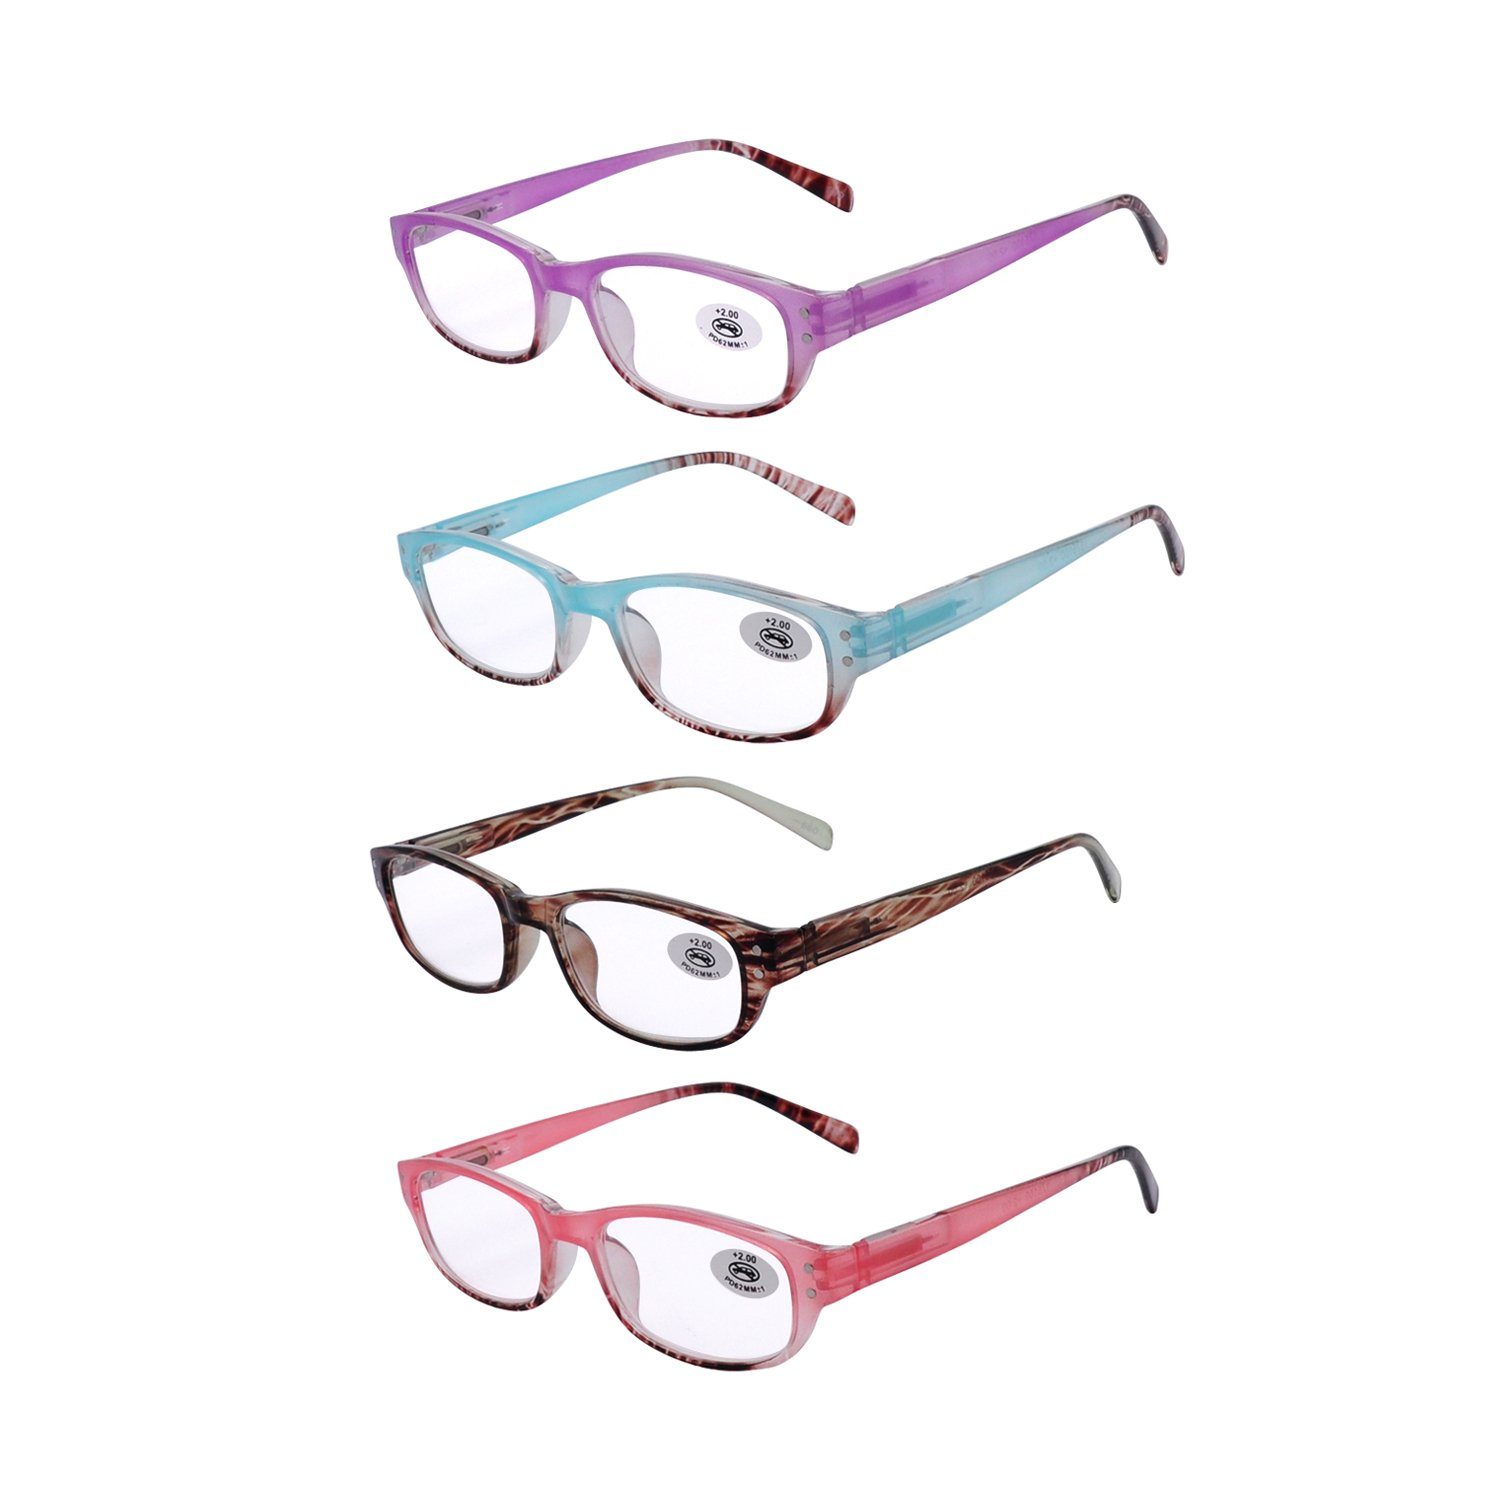 6175a84925c Amillet Reading Glasses 4 Pack for Women